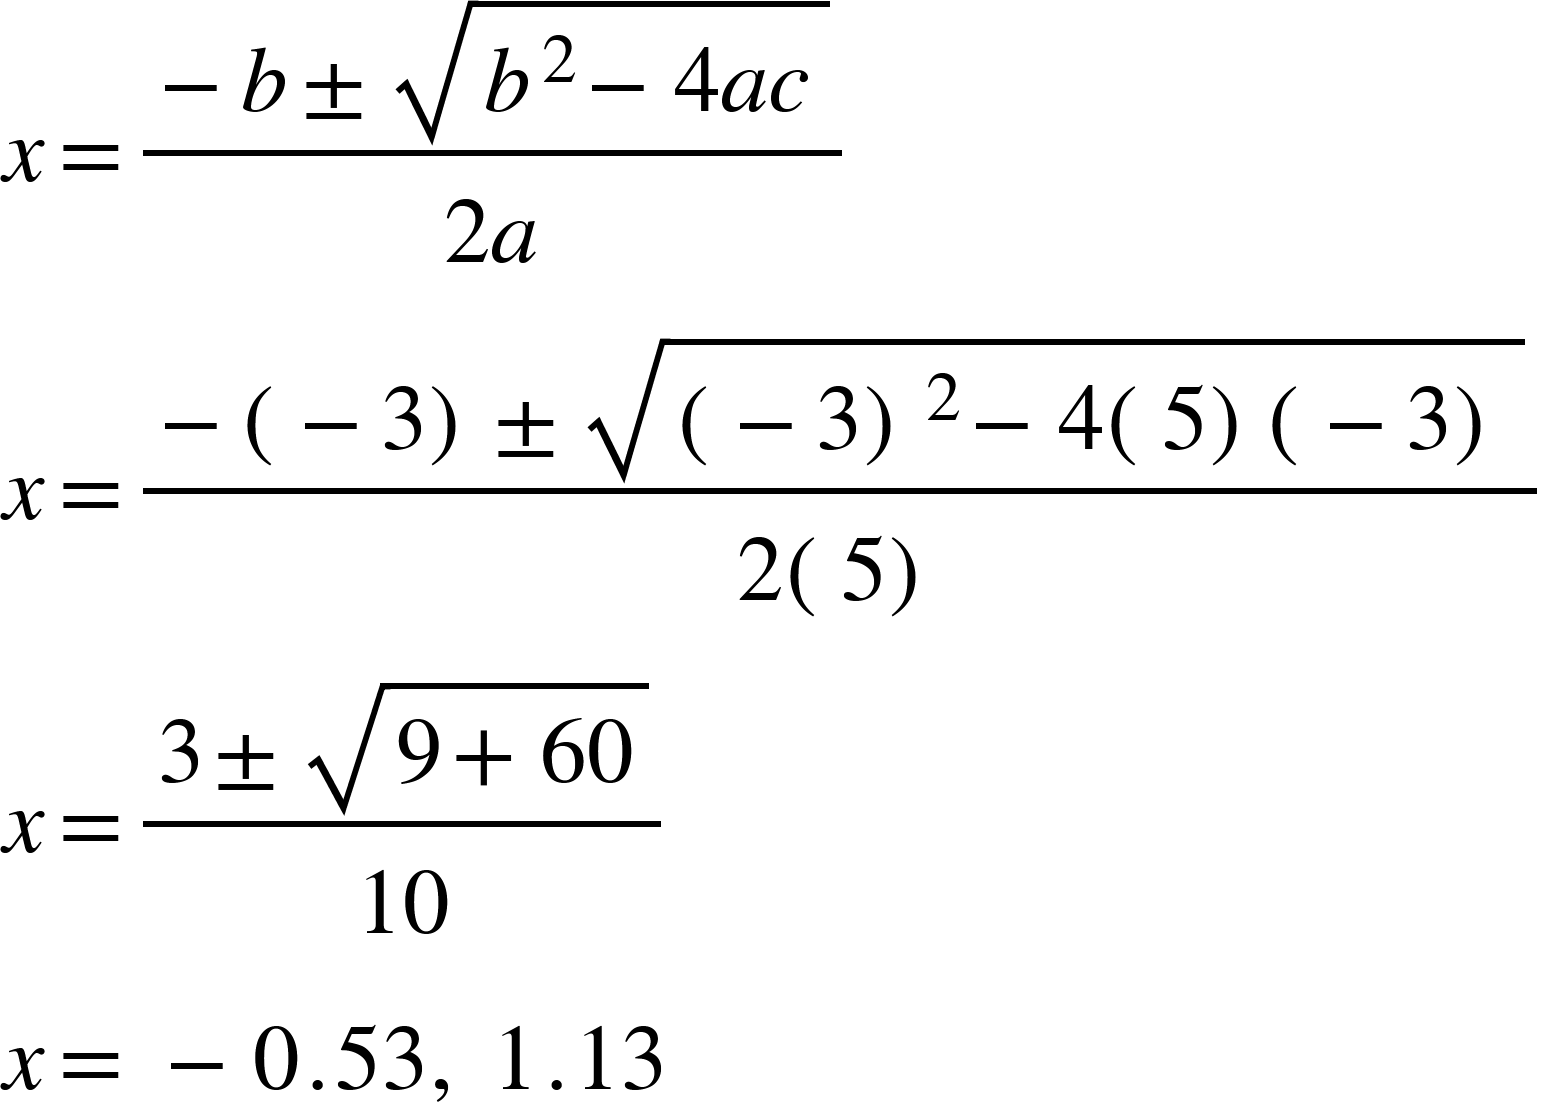 4 Lines. Line 1: x equals fraction numerator negative b plus-or-minus square root of b squared minus 4 a c end root over denominator 2 a end fraction. Line 2:  x equals fraction numerator negative open parentheses negative 3 close parentheses plus-or-minus square root of open parentheses negative 3 close parentheses squared minus 4 open parentheses 5 close parentheses open parentheses negative 3 close parentheses end root over denominator 2 open parentheses 5 close parentheses end fraction. line 3: x equals fraction numerator 3 plus-or-minus square root of 9 plus 60 end root over denominator 10 end fraction. line 4: x equals space minus 0.53 comma space 1.13